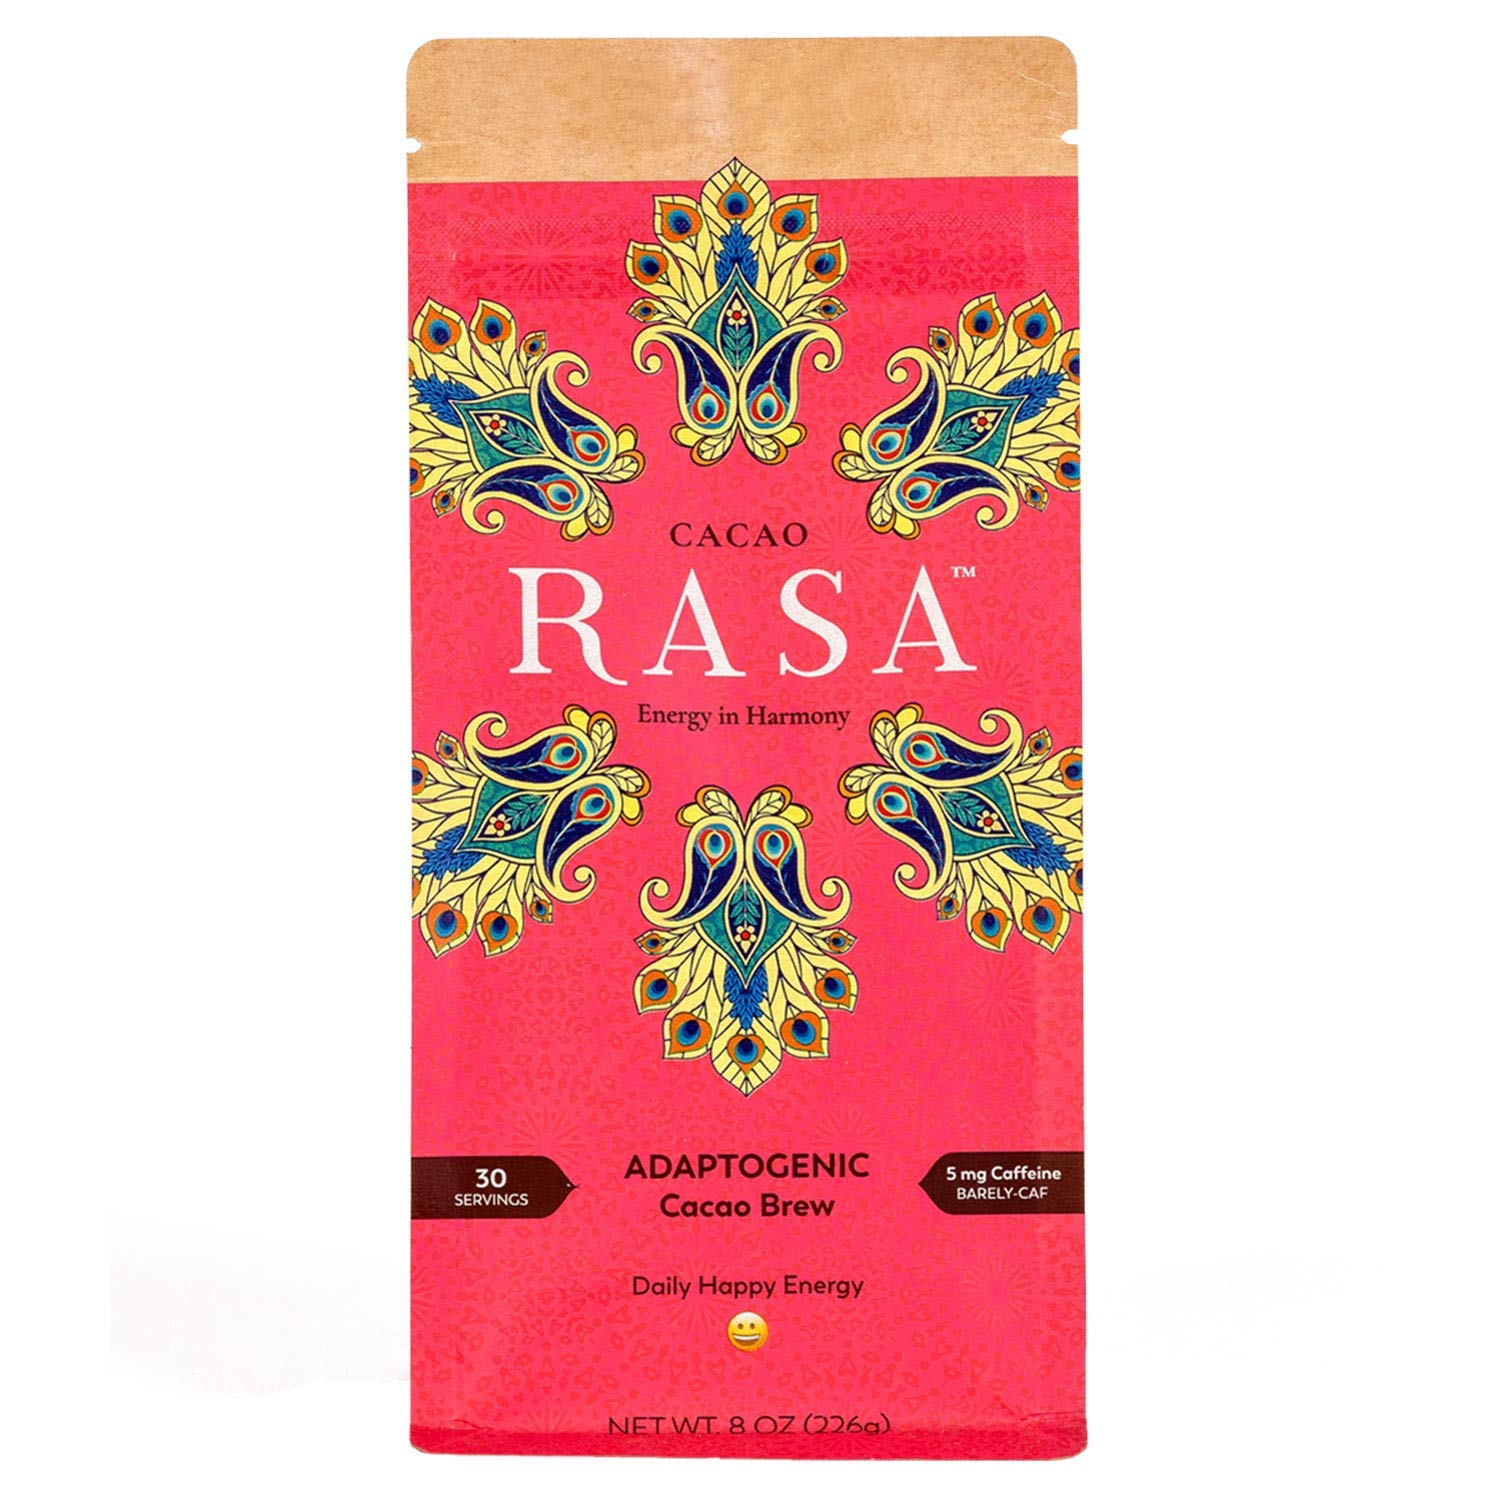 Cacao Rasa Coffee Alternative with Chaga + Reishi for All-Day Energy + Focus - Organic, Adaptogenic, Vegan, Keto, Low Caffeine, Whole30, 8 Ounce by Rasa